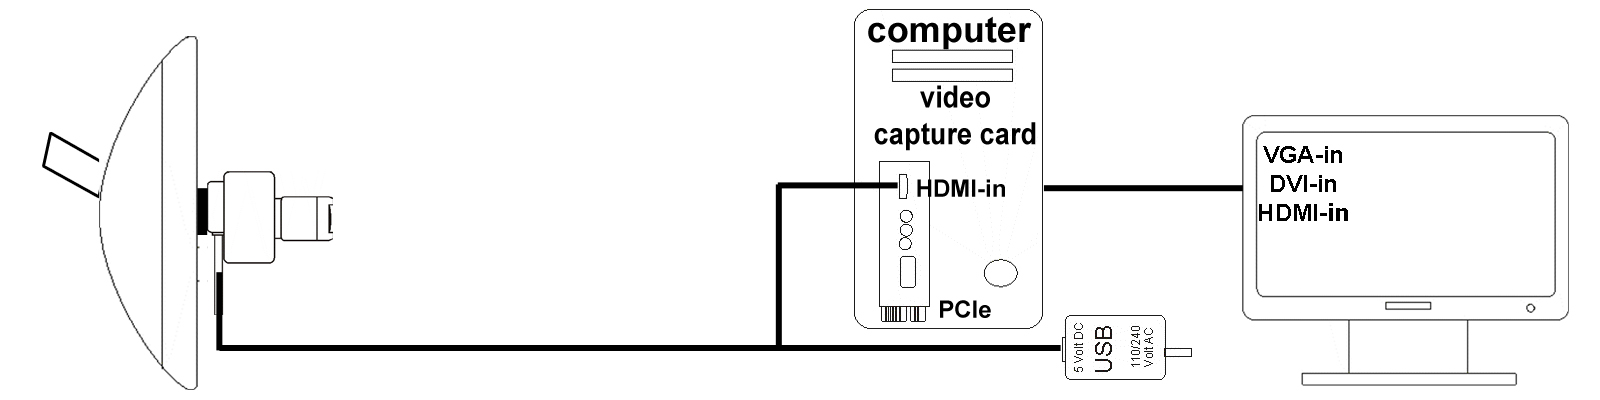 diagram thirdeye uni with computer and capture card